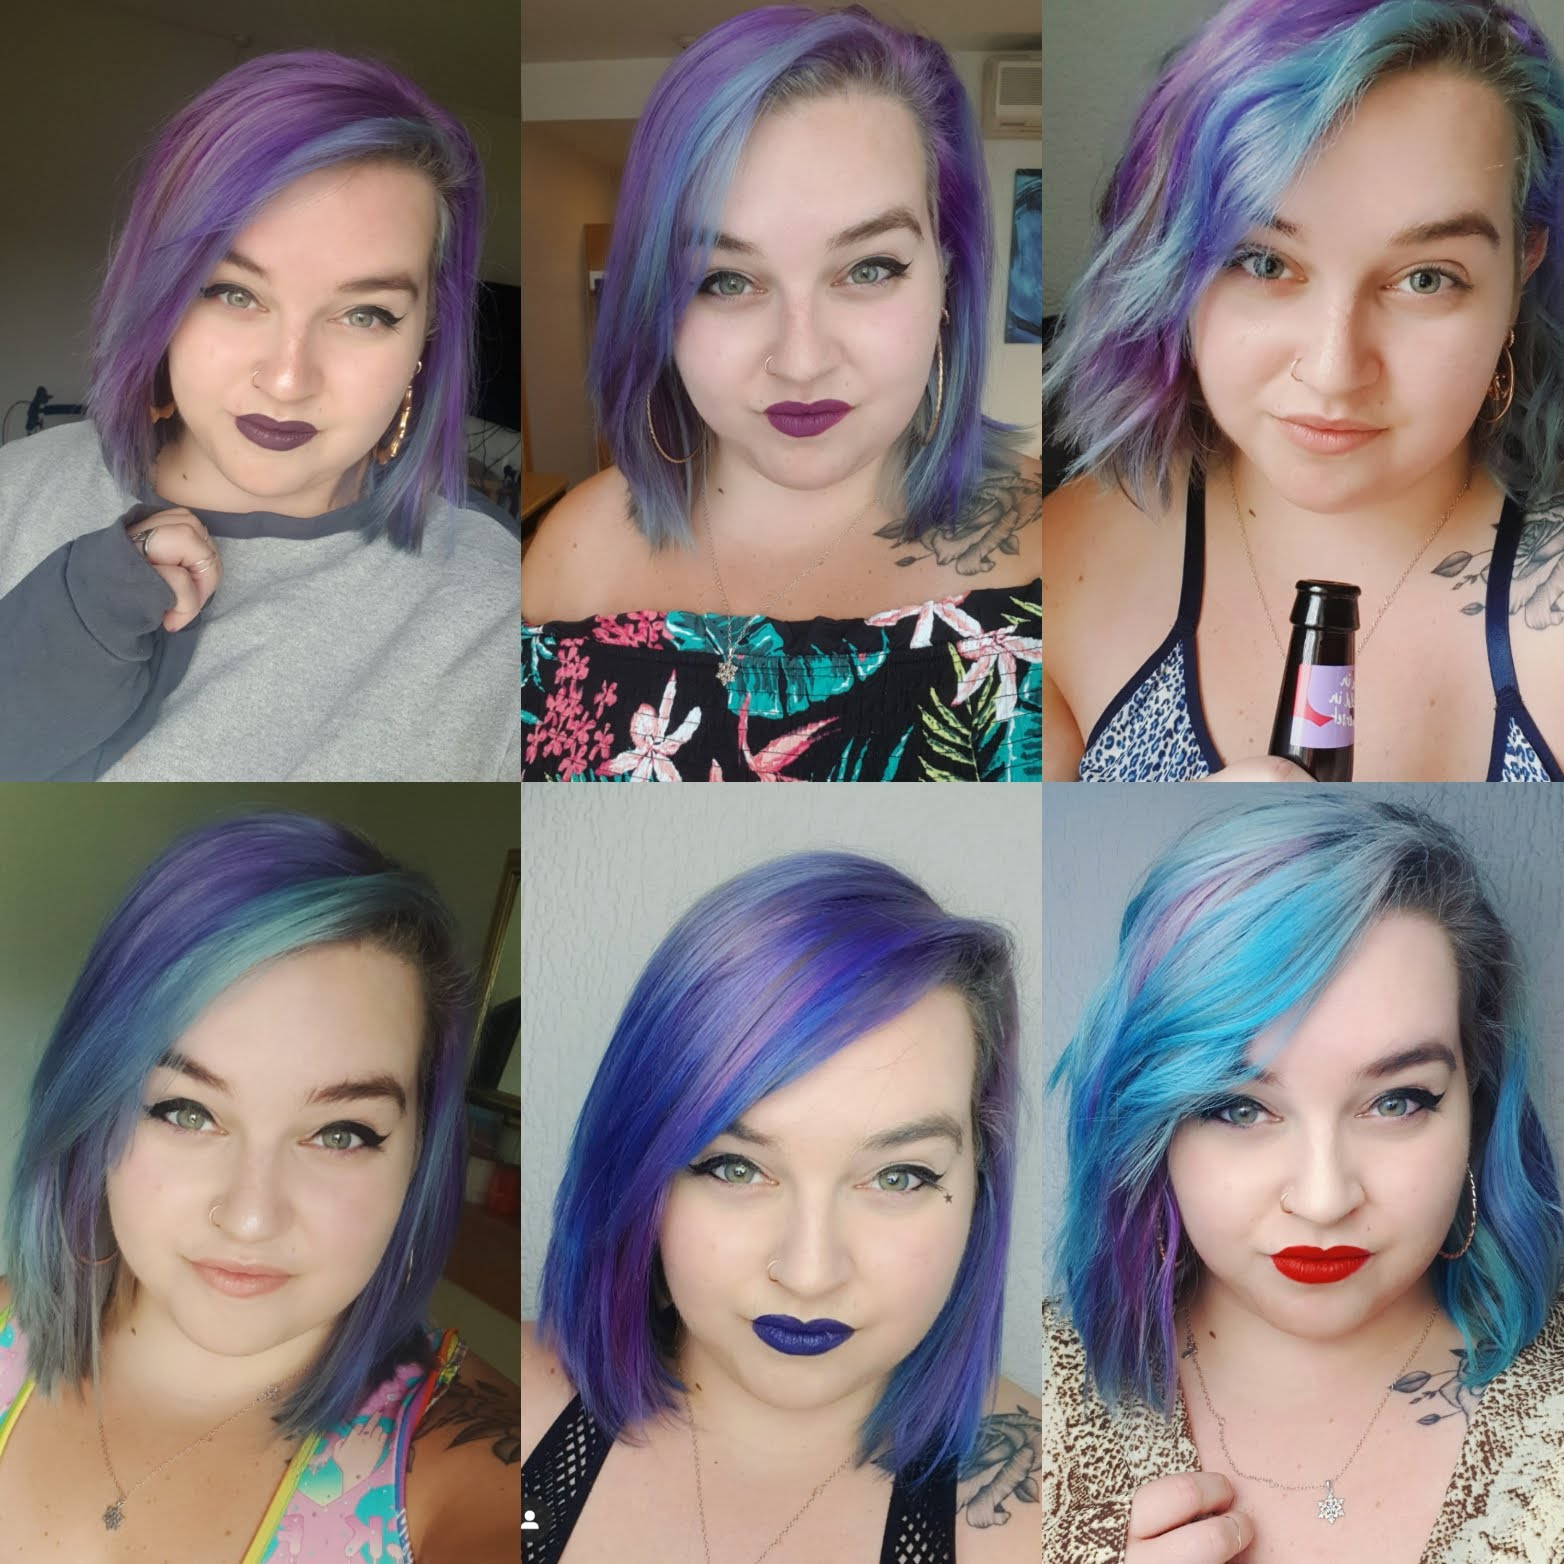 6 photos of beth showing her with various colour hair including pink, purple and blue